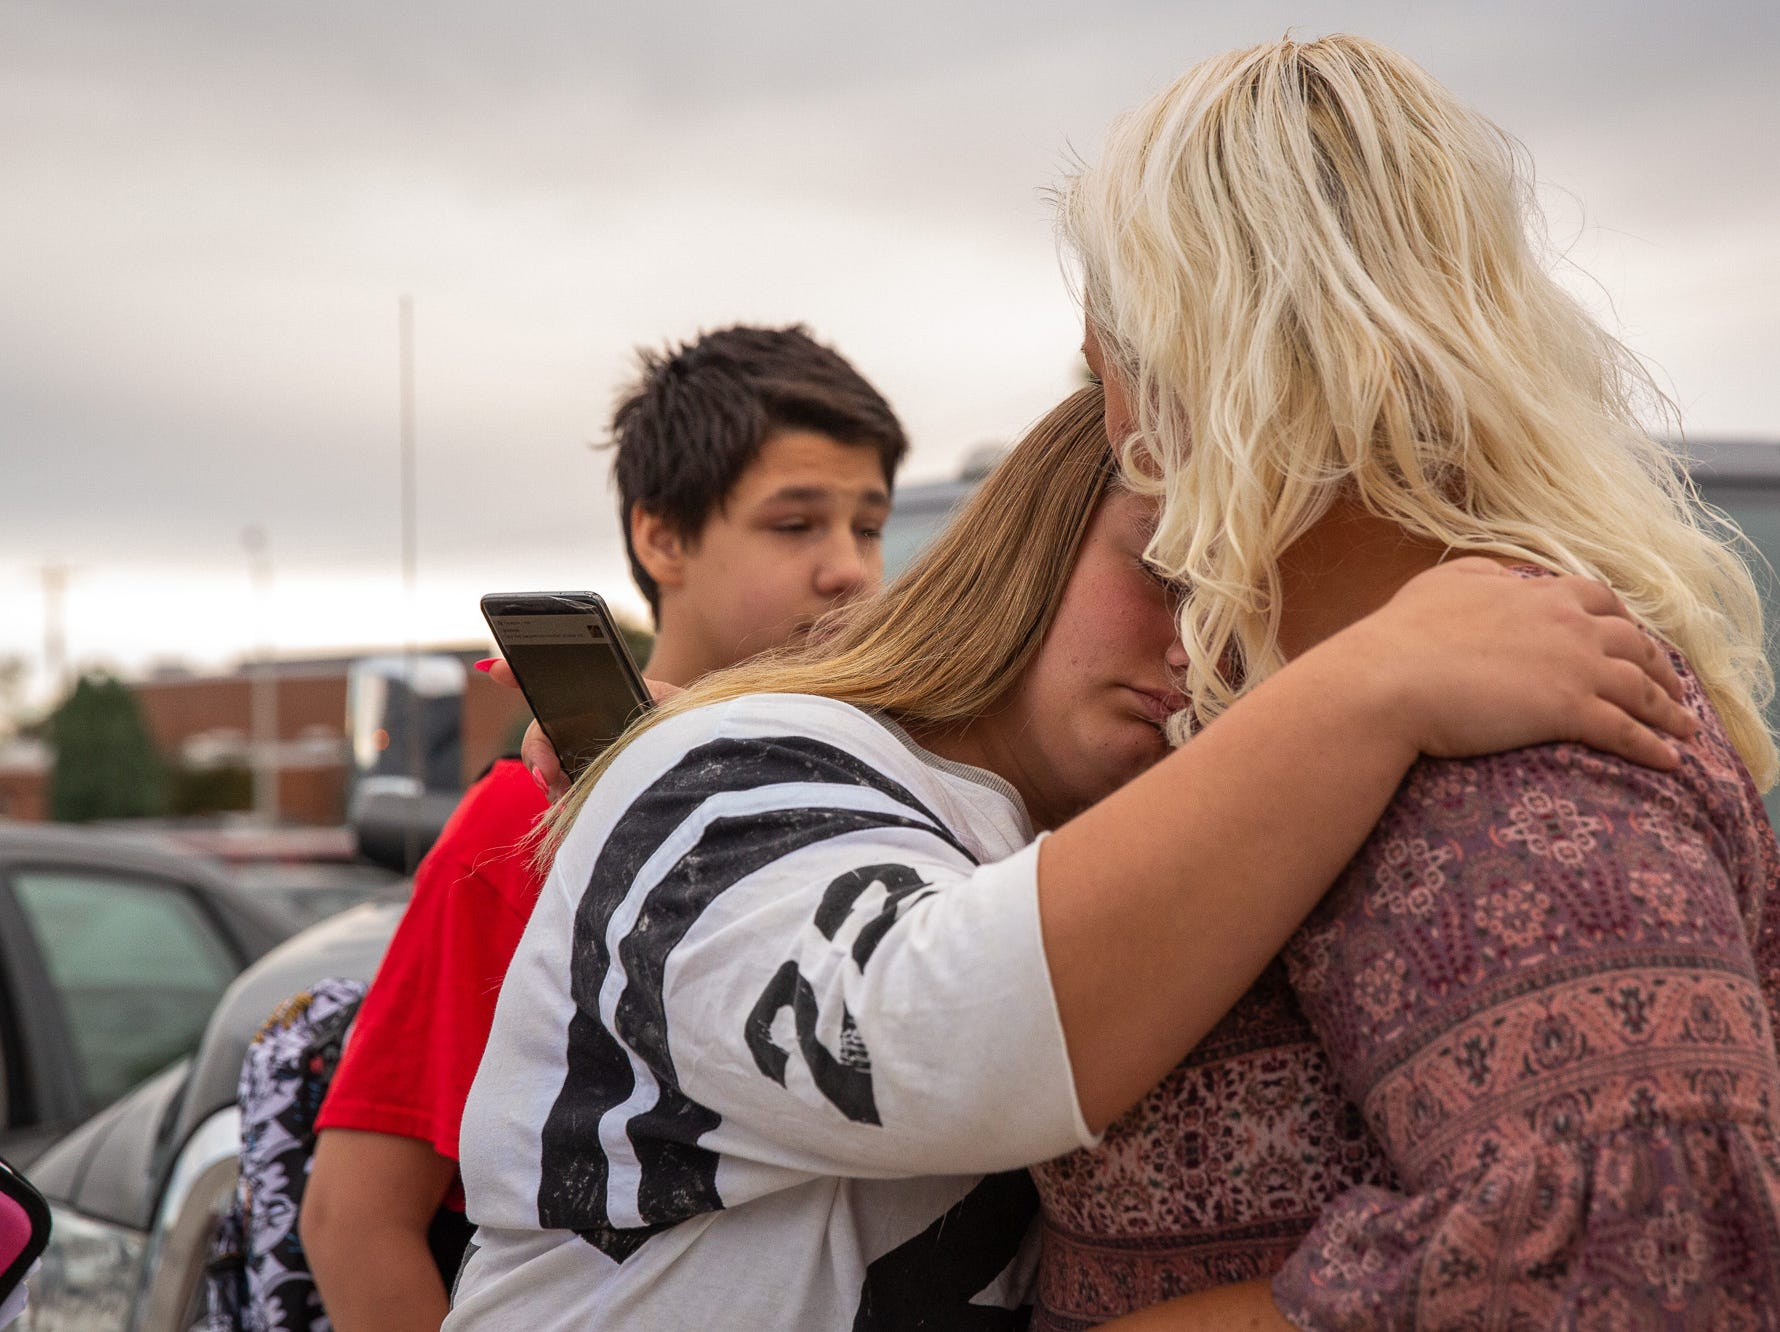 Aireana Mummerth, a 6th grader, embraces her mother, Amy Mummerth, after being escorted to school at Emory Markle Intermediate School by dozens of members of the Alliance of Bikers Aimed Toward Education biker group, Friday, Oct. 5, 2018, in Penn Township. The ride was organized to show their support for Aireana, who says she has been bullied.